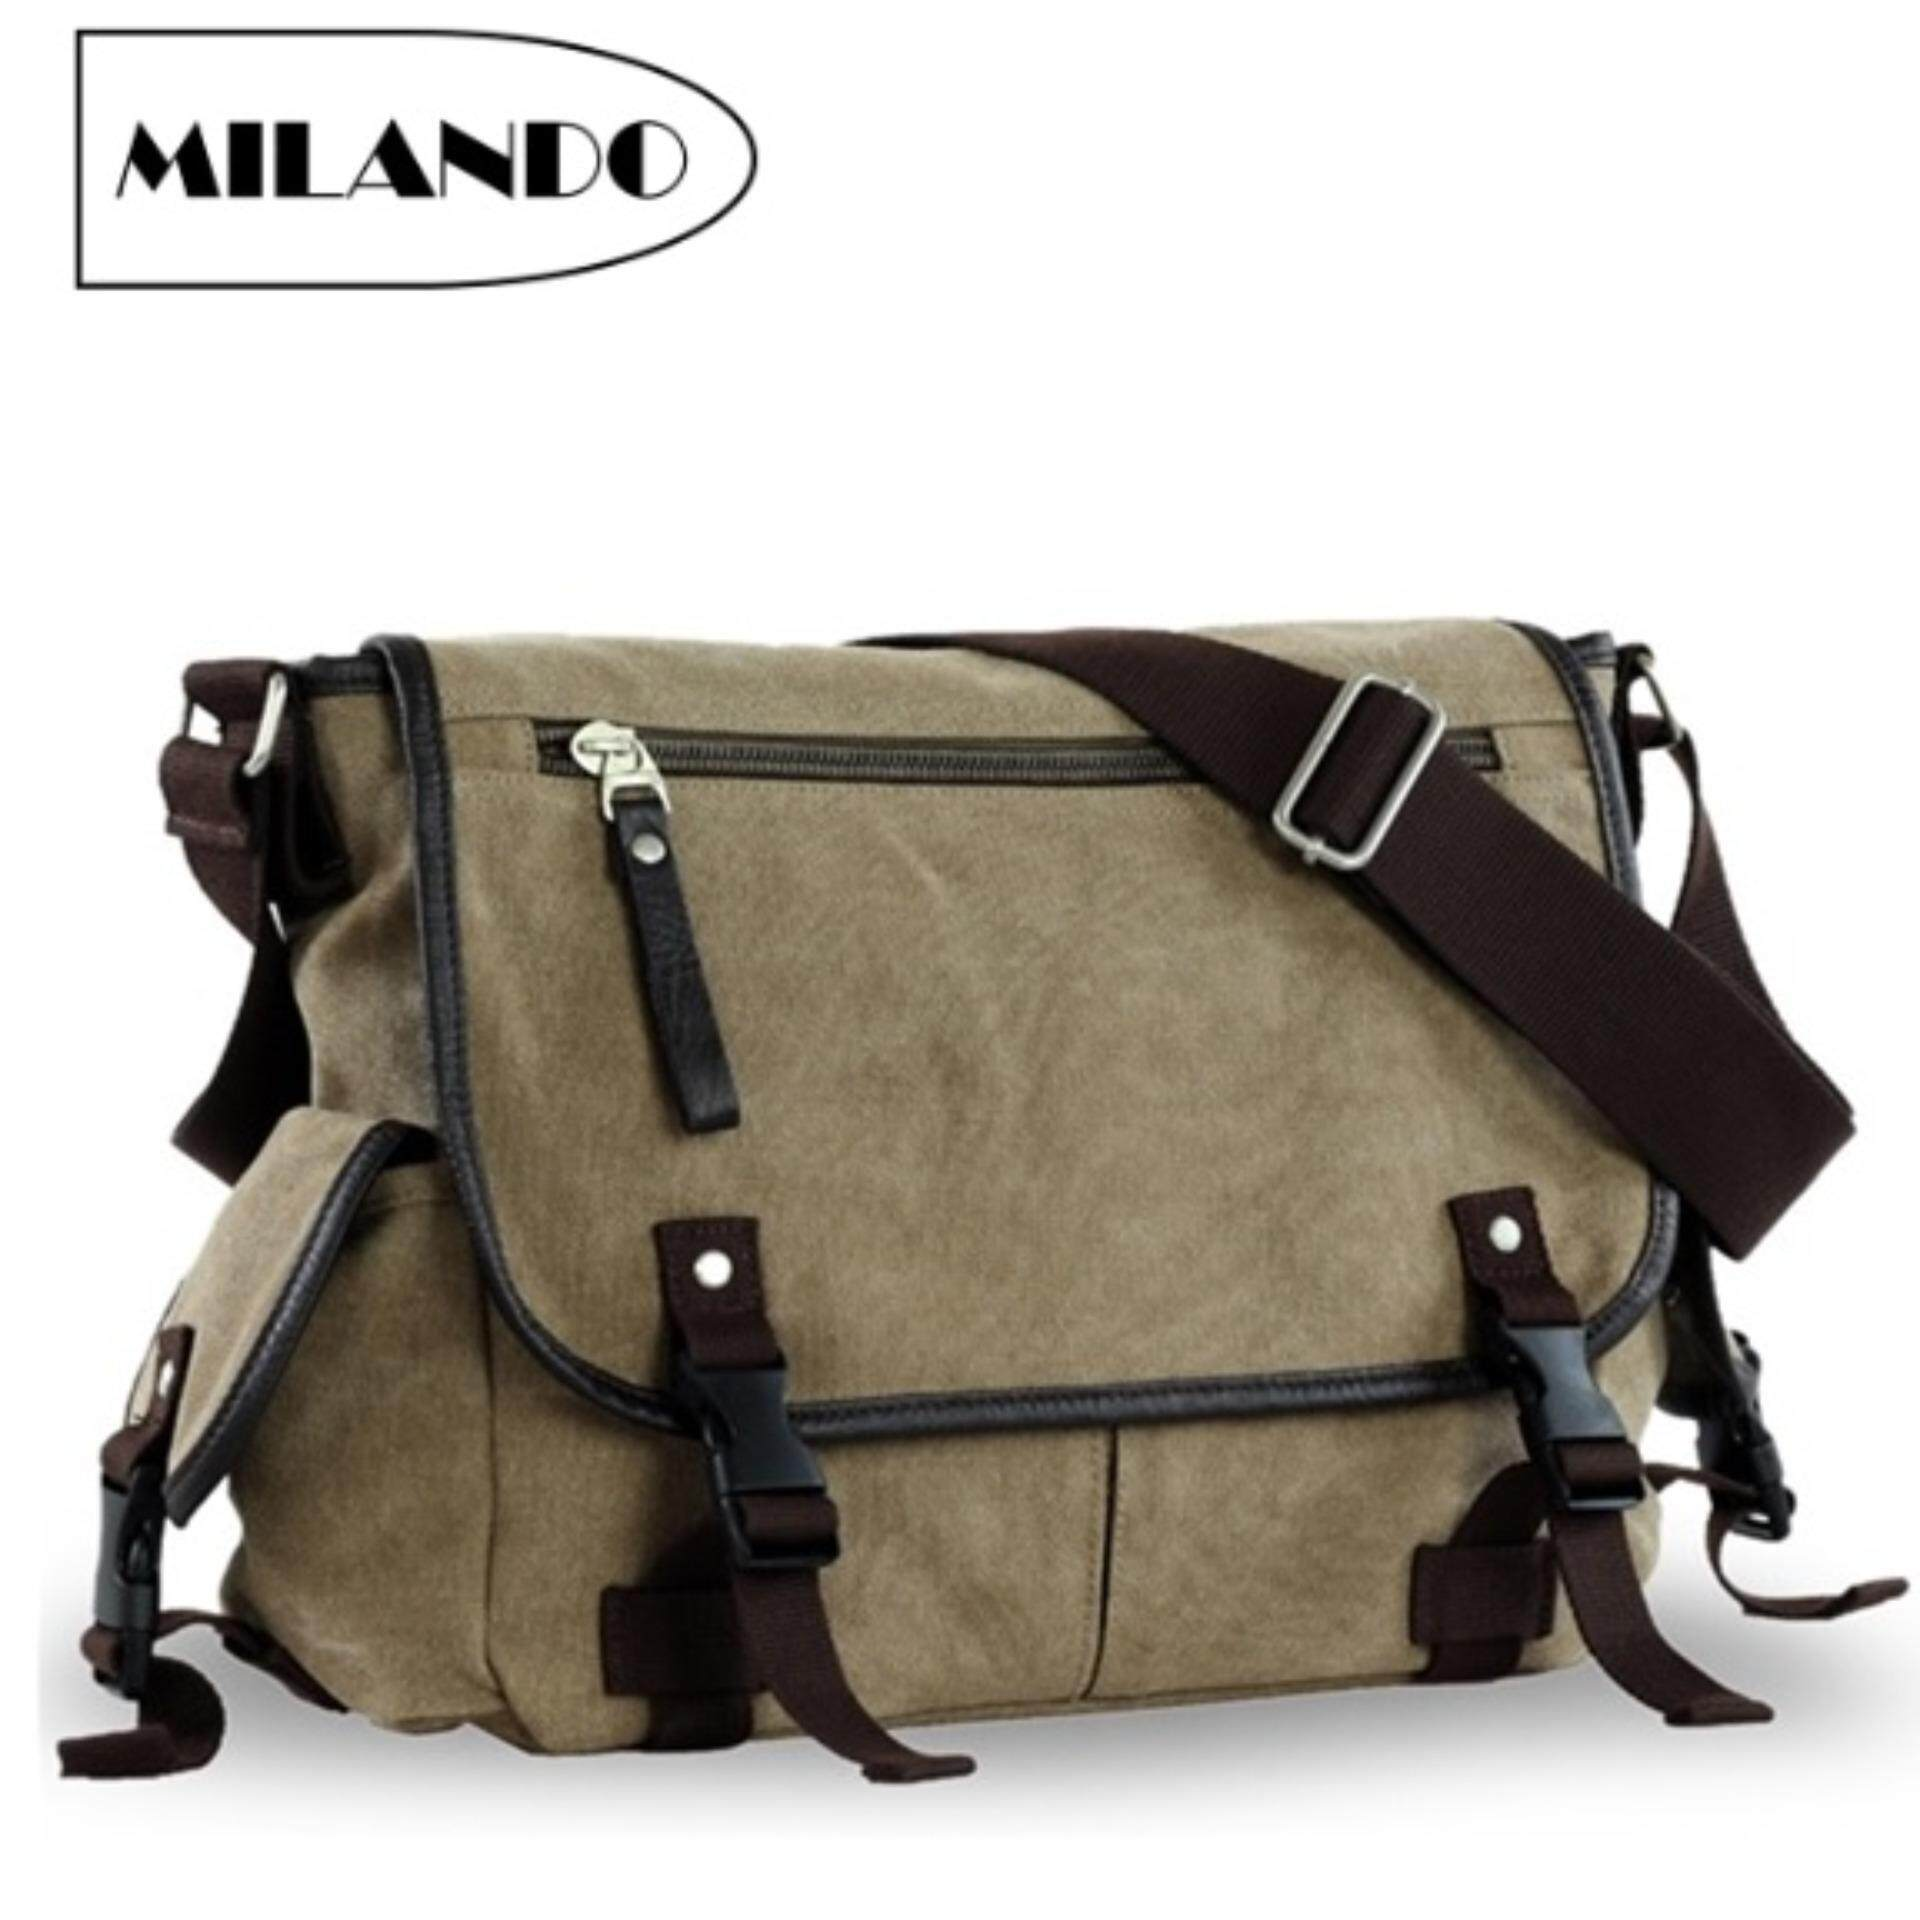 648f04ab622e MILANDO Men Vintage Canvas School Messenger Sling Bag Bags Beg Lelaki (Type  8)